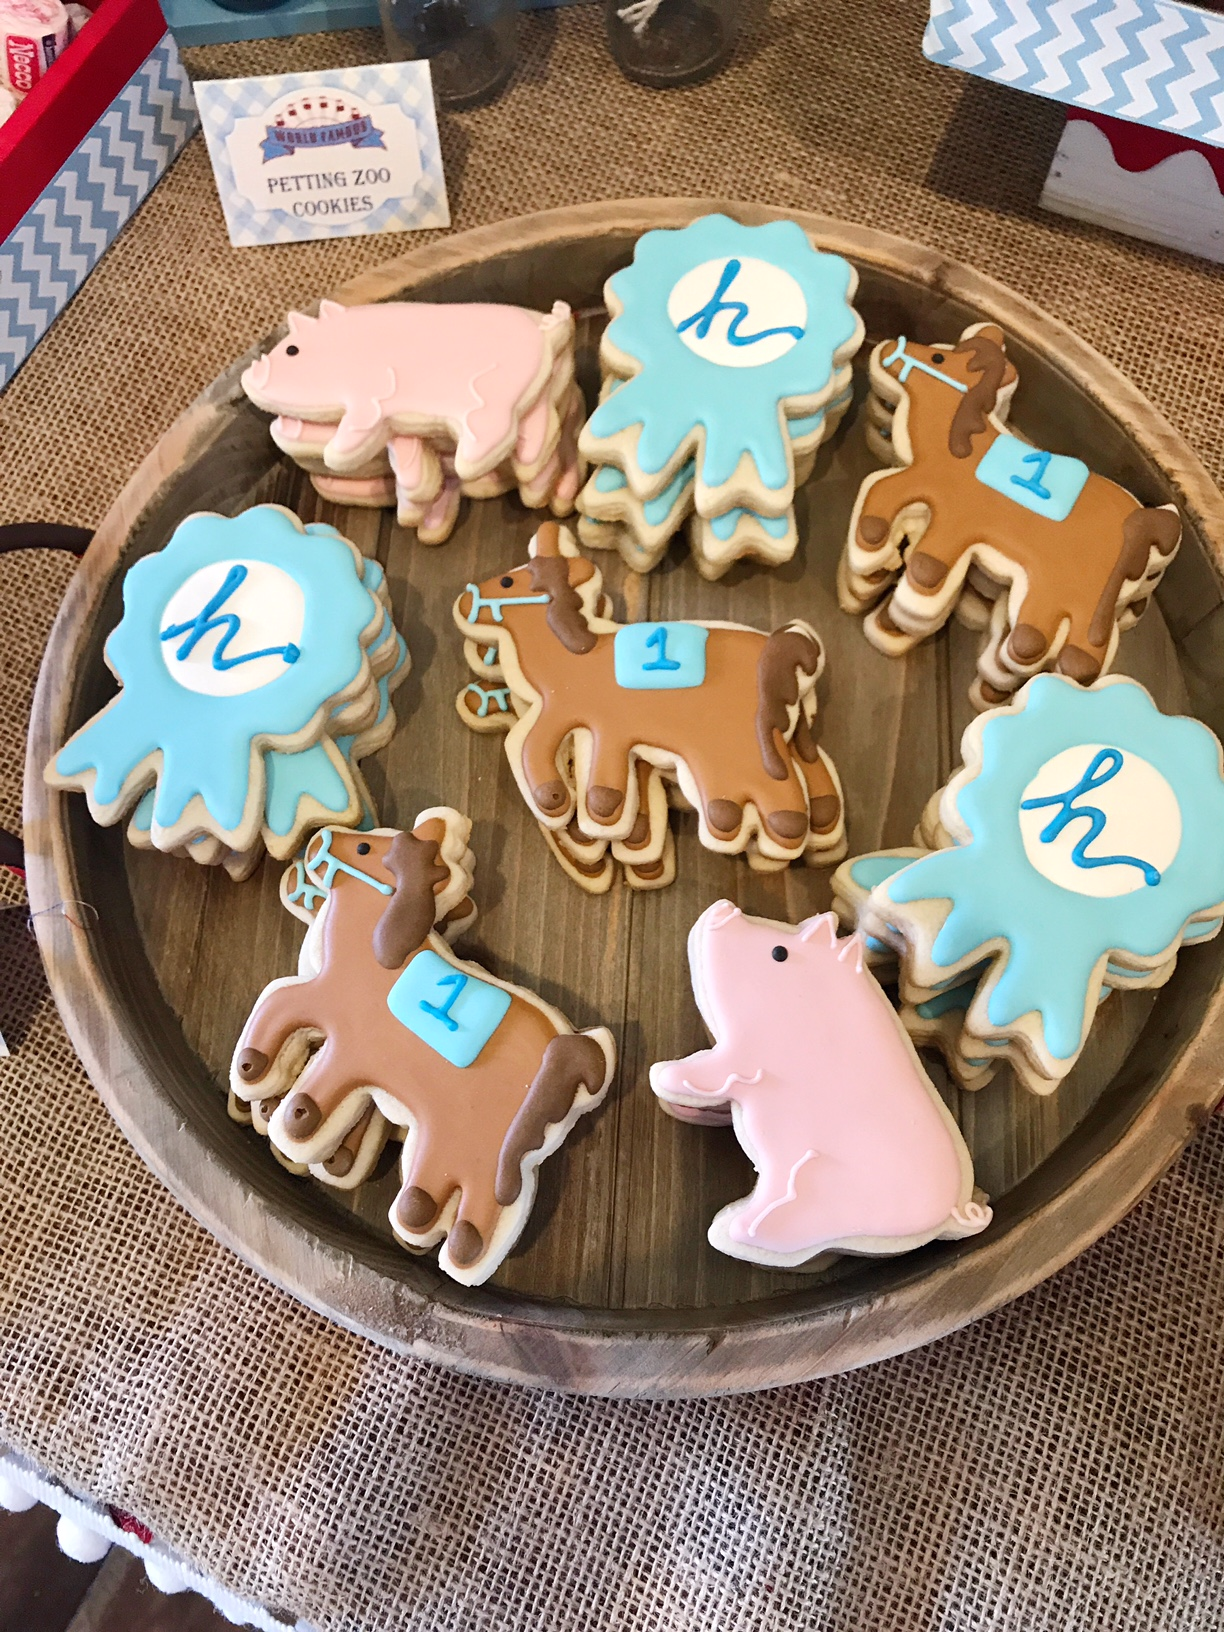 Seriously, how cute are these cookies?? My go-to for all things dessert related is @societysweets.